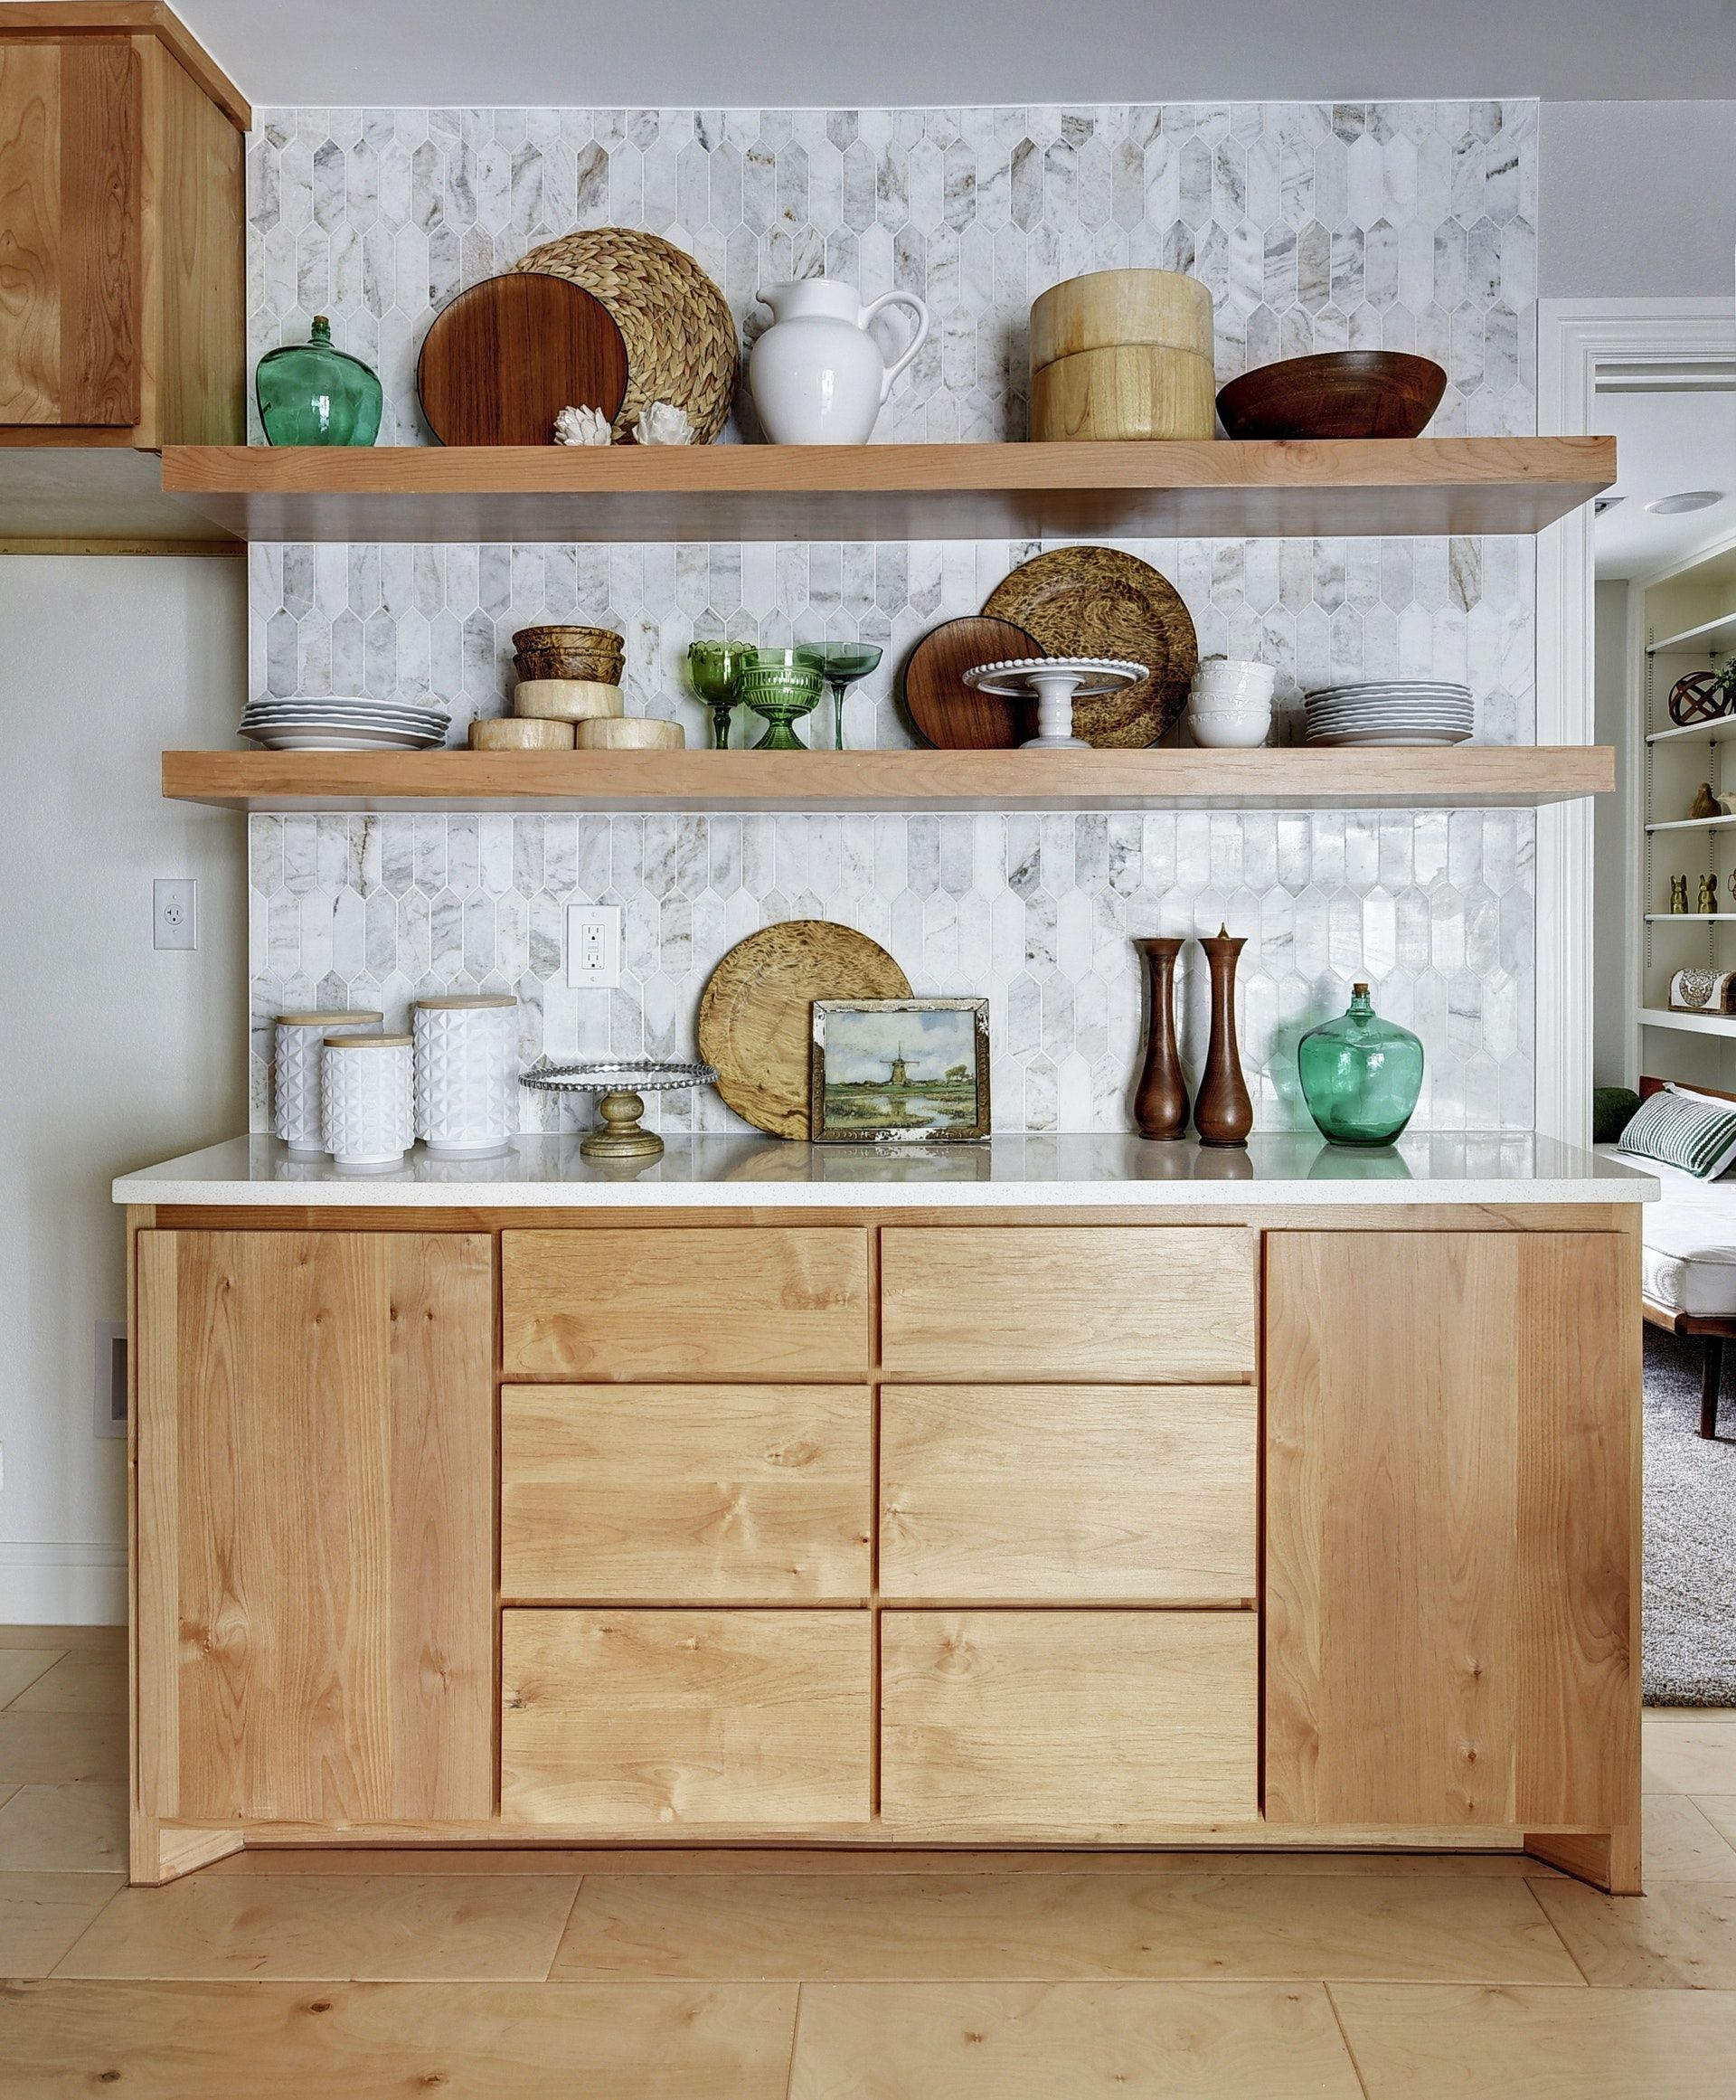 Open Shelves Pull Out Trash Cabinet Wood Plates Colored Glass Watercol Kitchen Cabinets And Backsplash Wood Shelves Living Room Kitchen Cabinets Light Wood